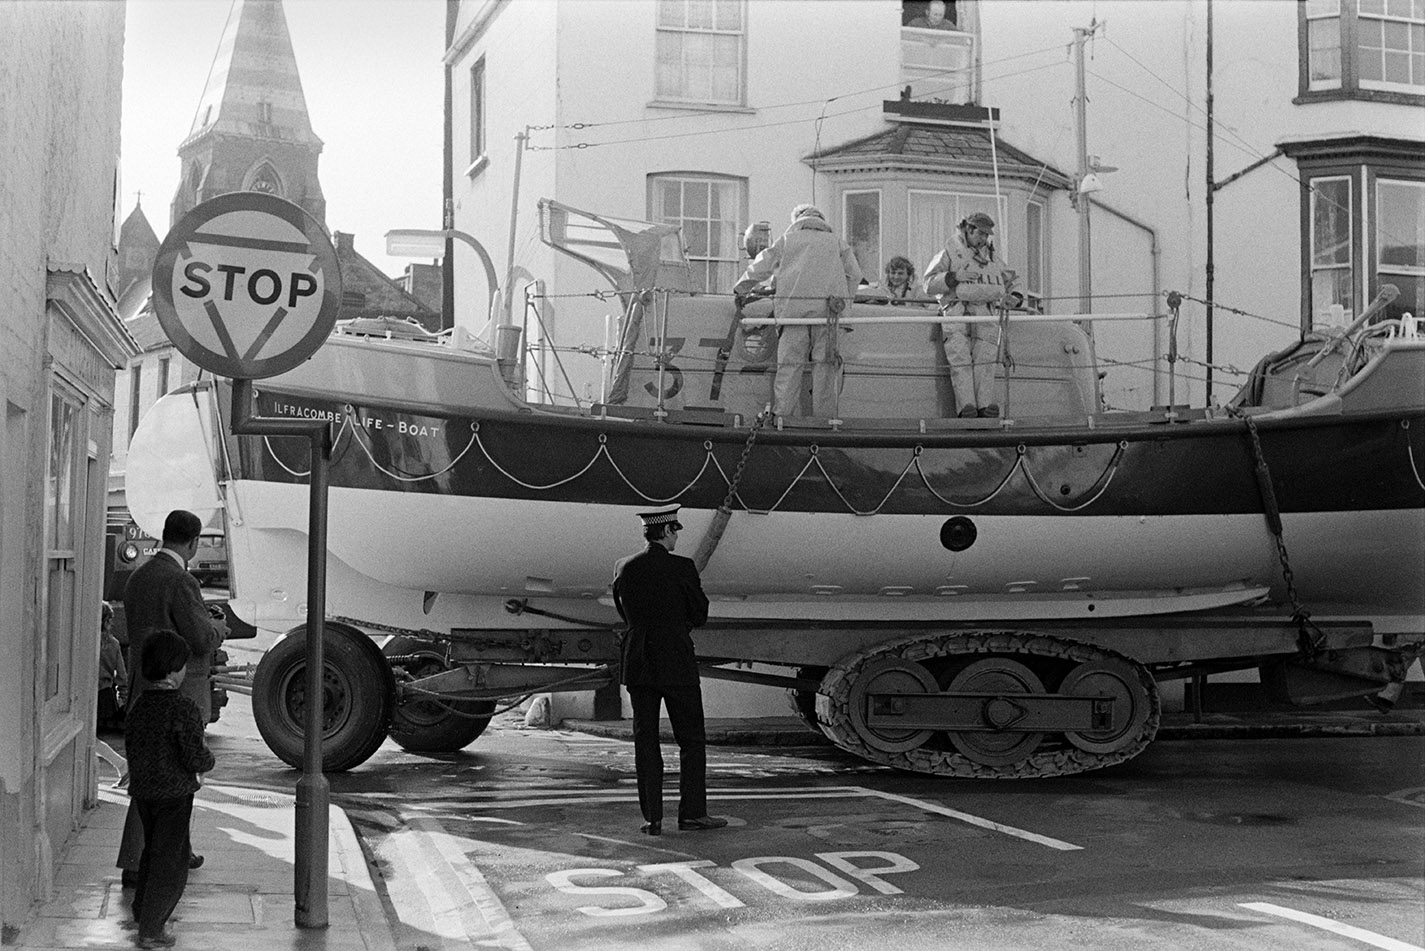 Lifeboat through town. Documentary photograph by Roger Deakins for the Beaford Archive © Beaford Arts